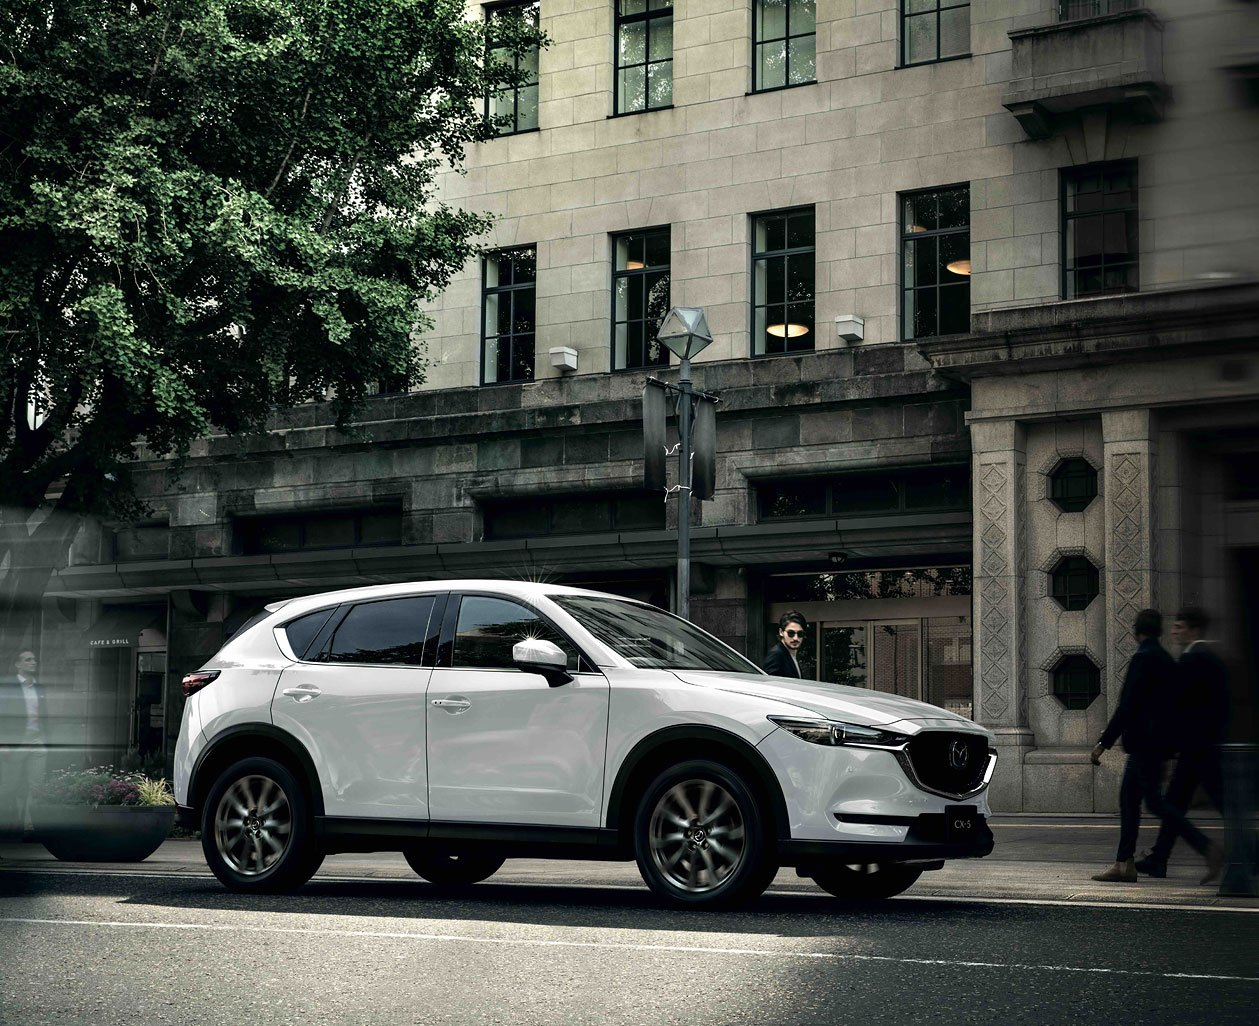 mazdacx5-cafeautovn-1